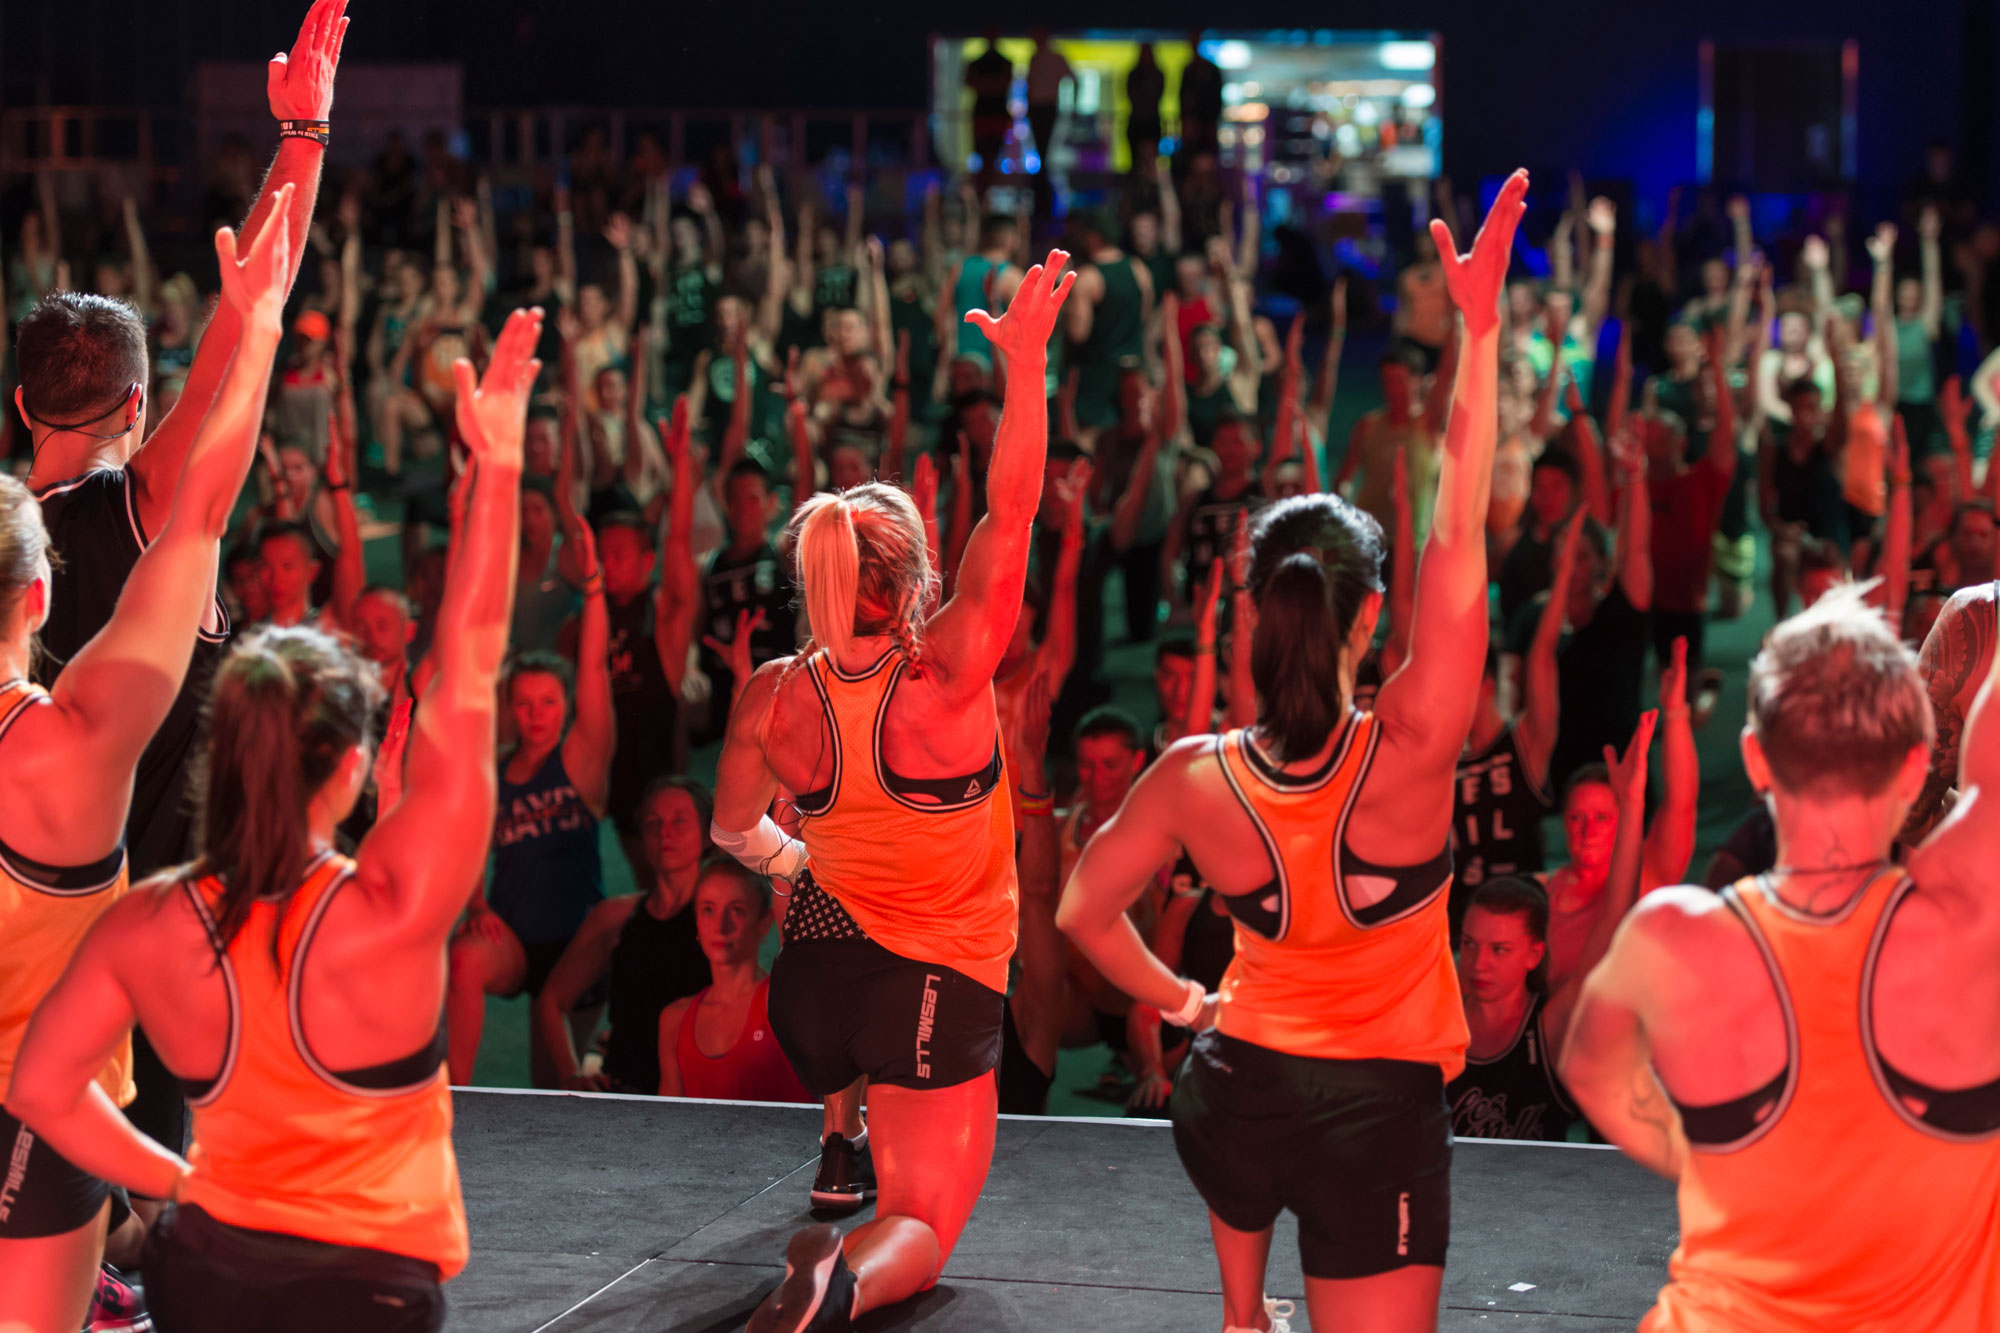 Training Landing Page Les Mills Asia Pacific